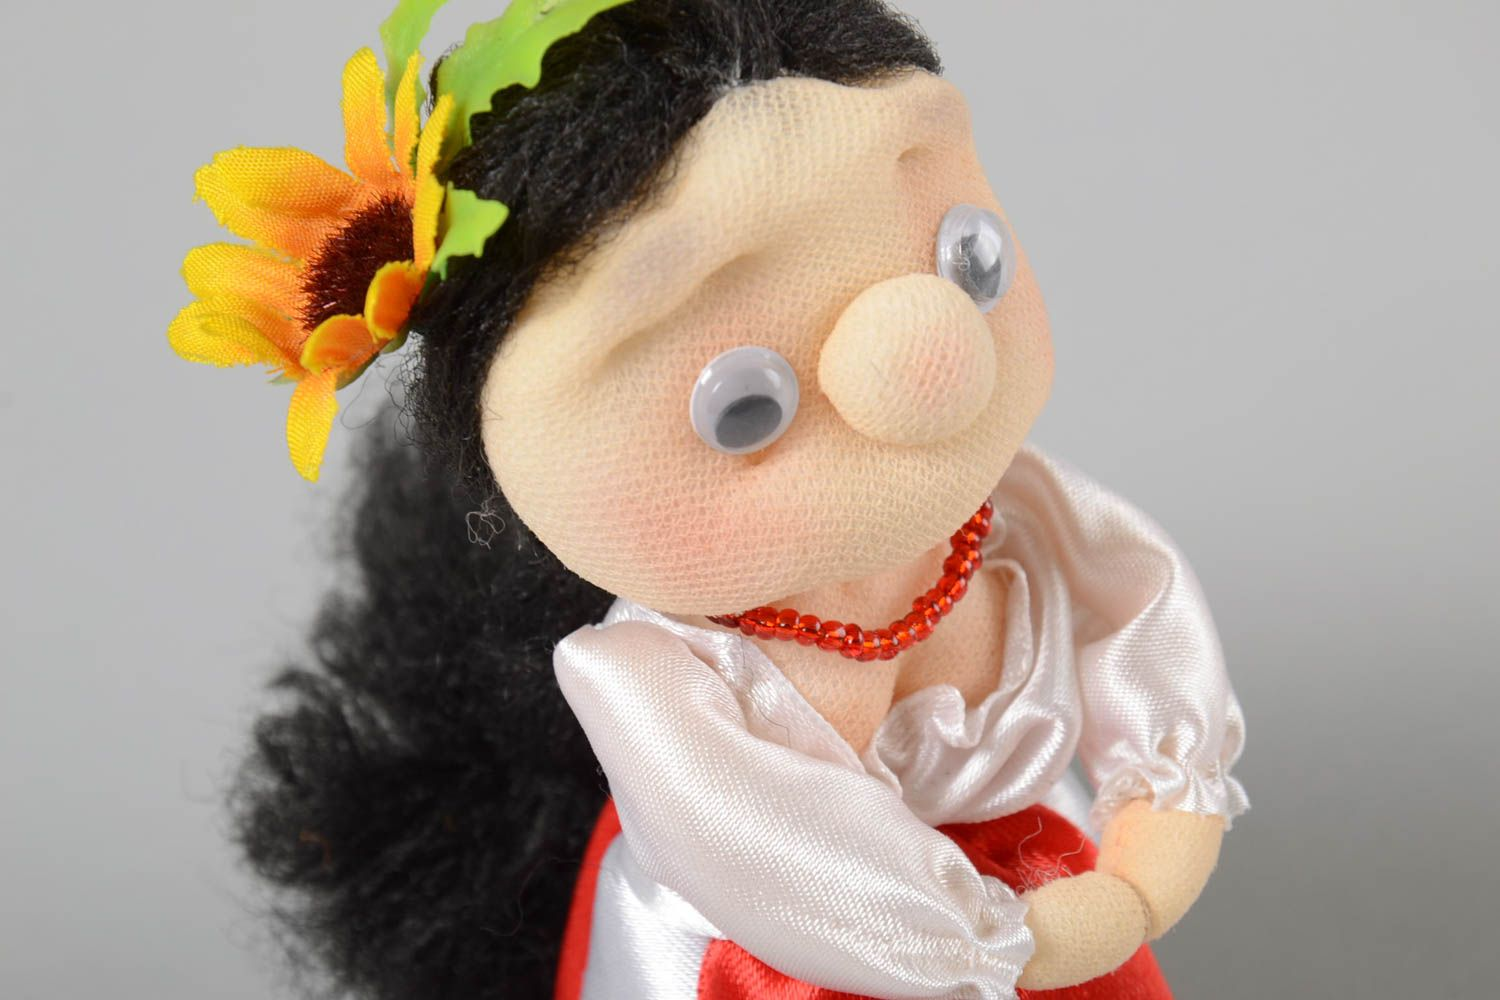 Unusual handmade soft toy rag doll cute toys collectible dolls home design photo 3